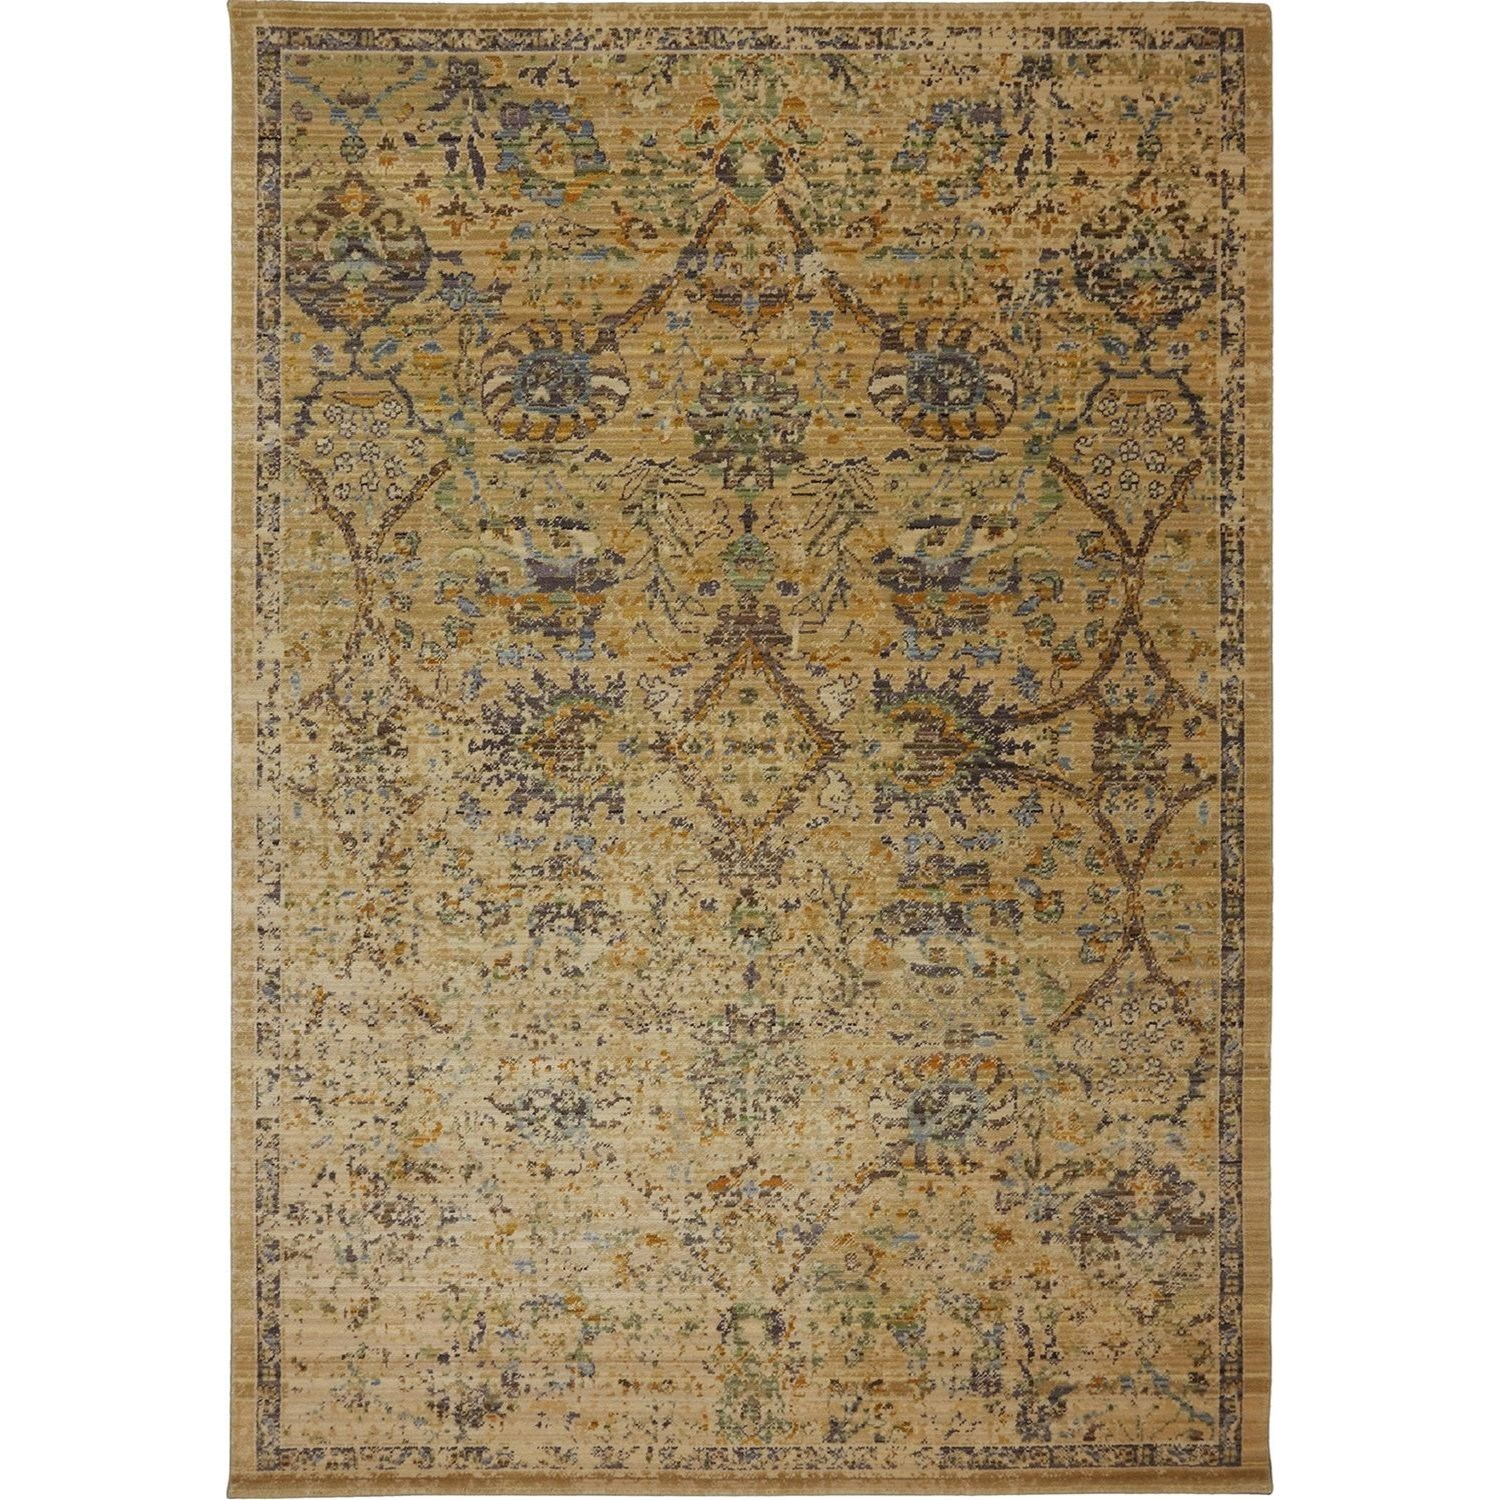 7'9x9'9 Pasha Cream Rug